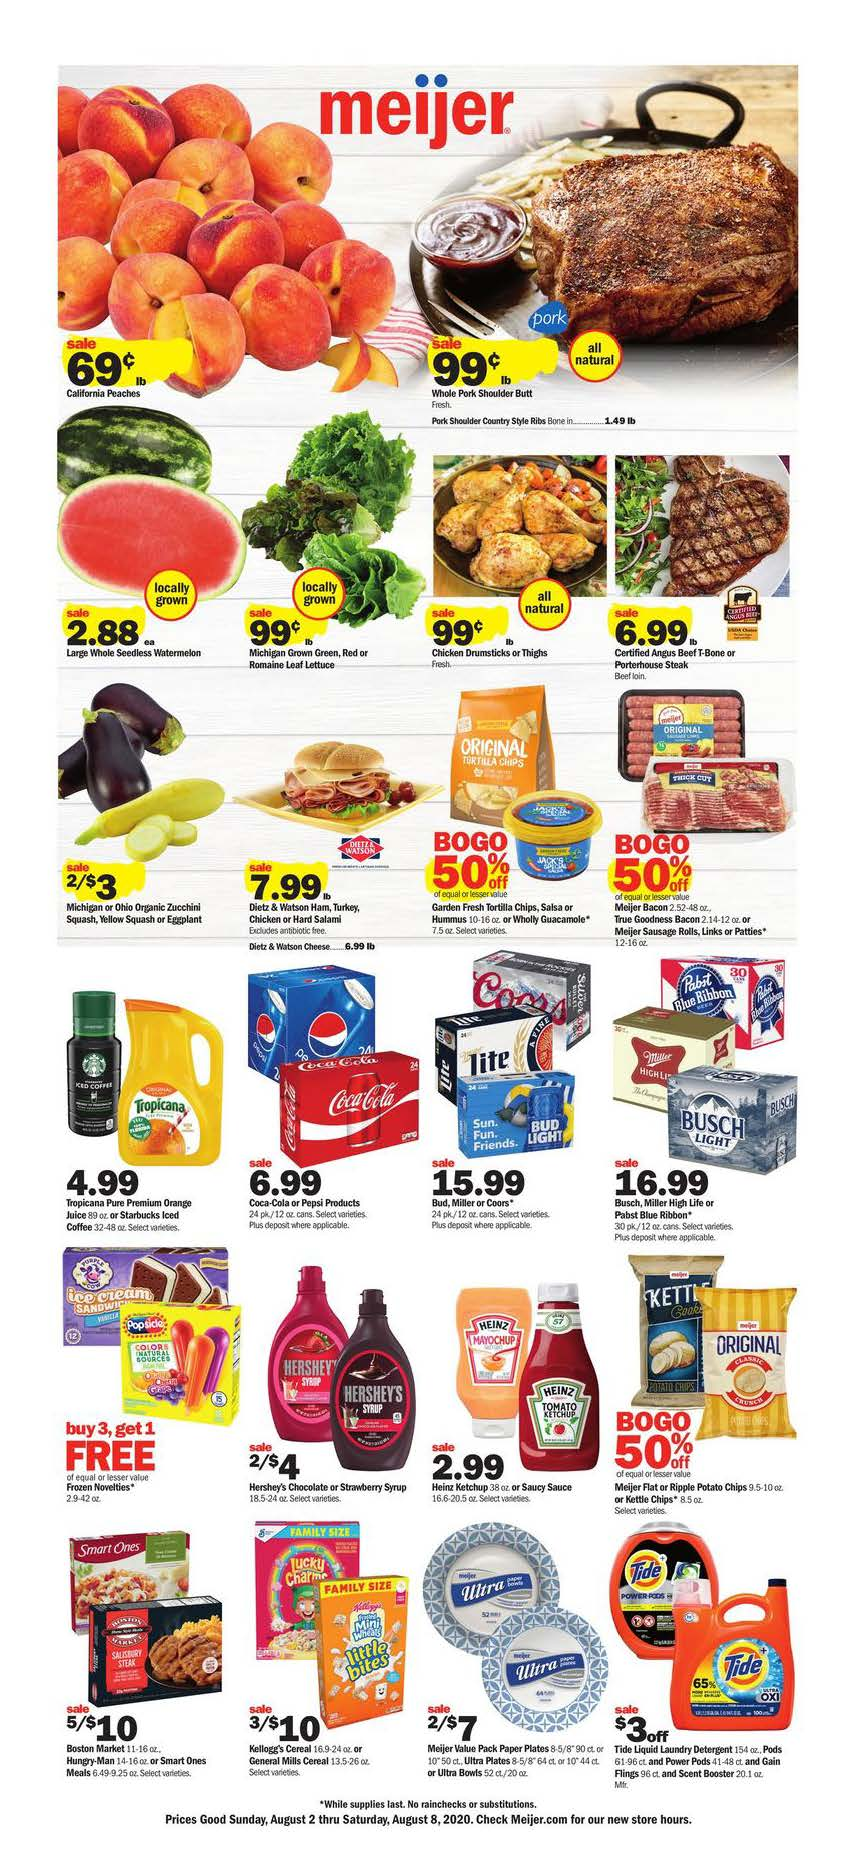 meijer august weekly ad valid from aug 2 8 2020